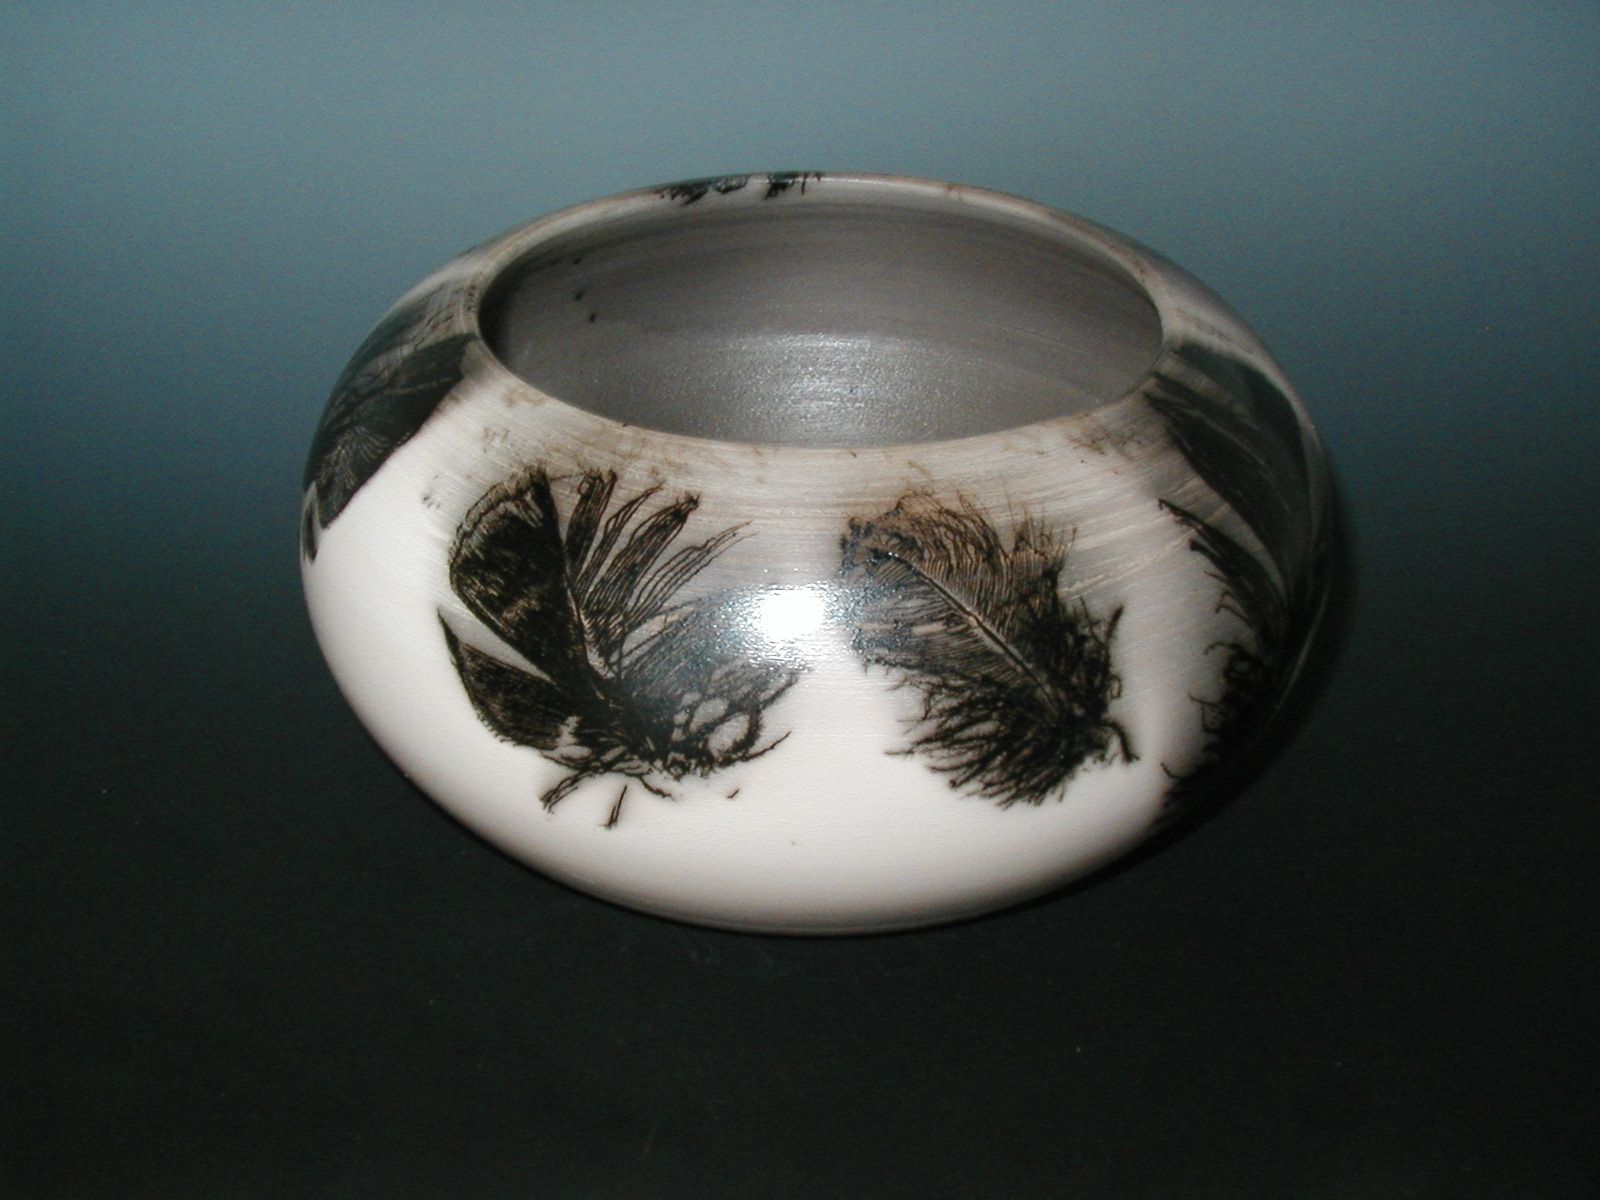 Horse Hair Pottery Feathers Row 3 Column 1 Ceramics In